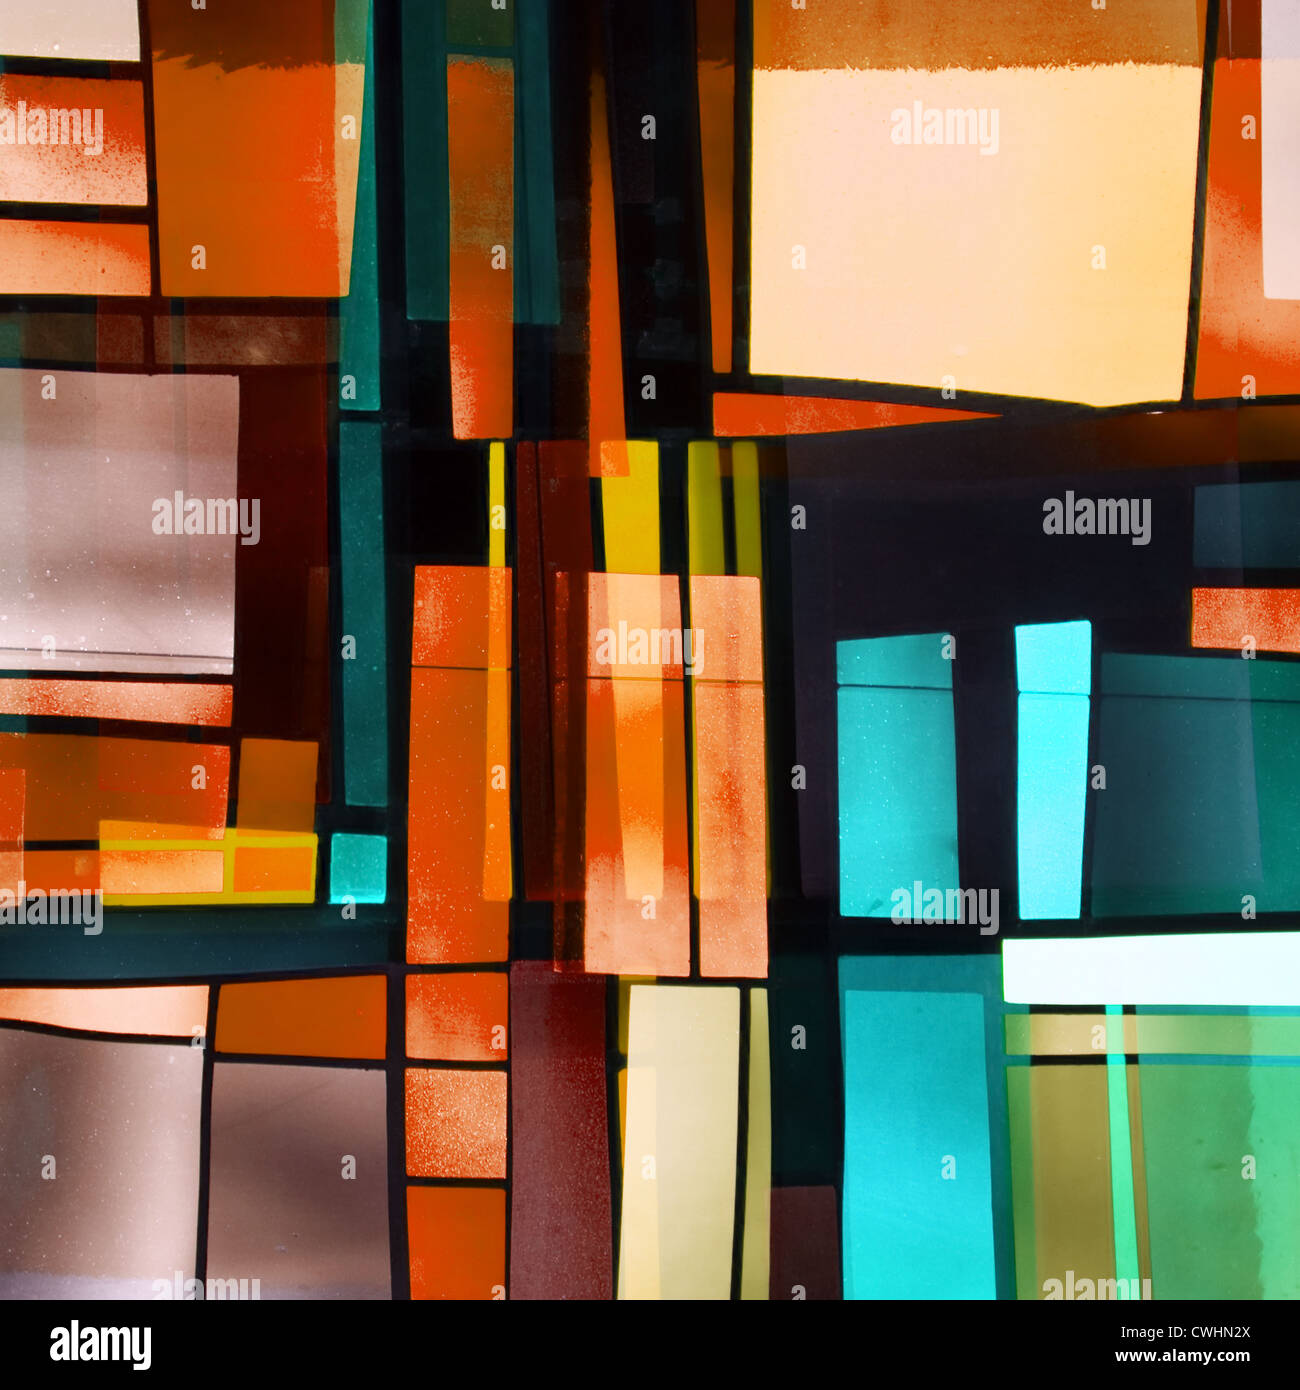 Modern architecture facade stained glass window stock for Architectural glass art